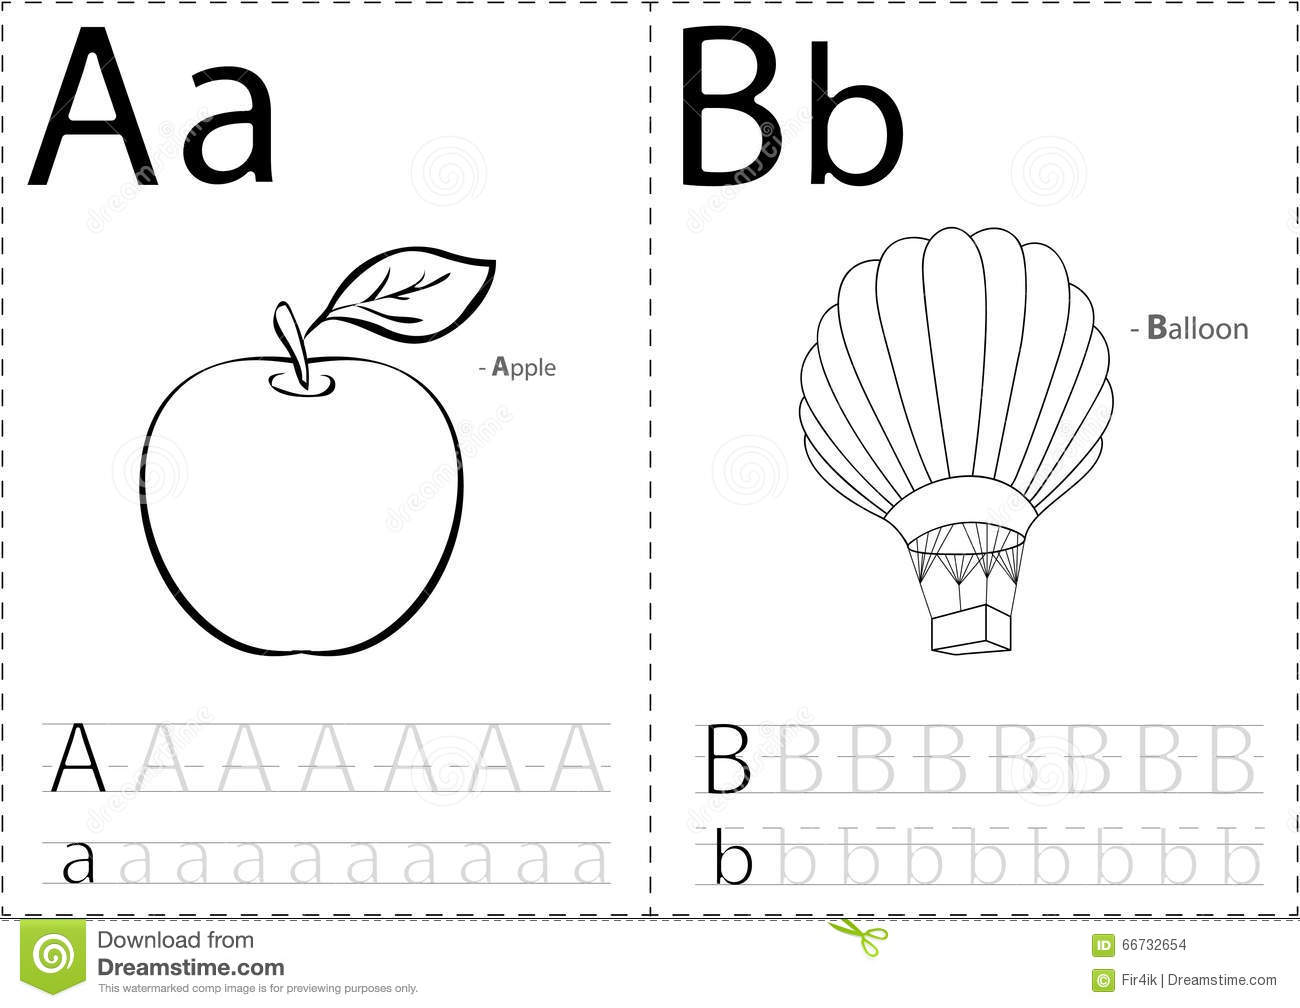 Cartoon Apple And Balloon. Alphabet Tracing Worksheet